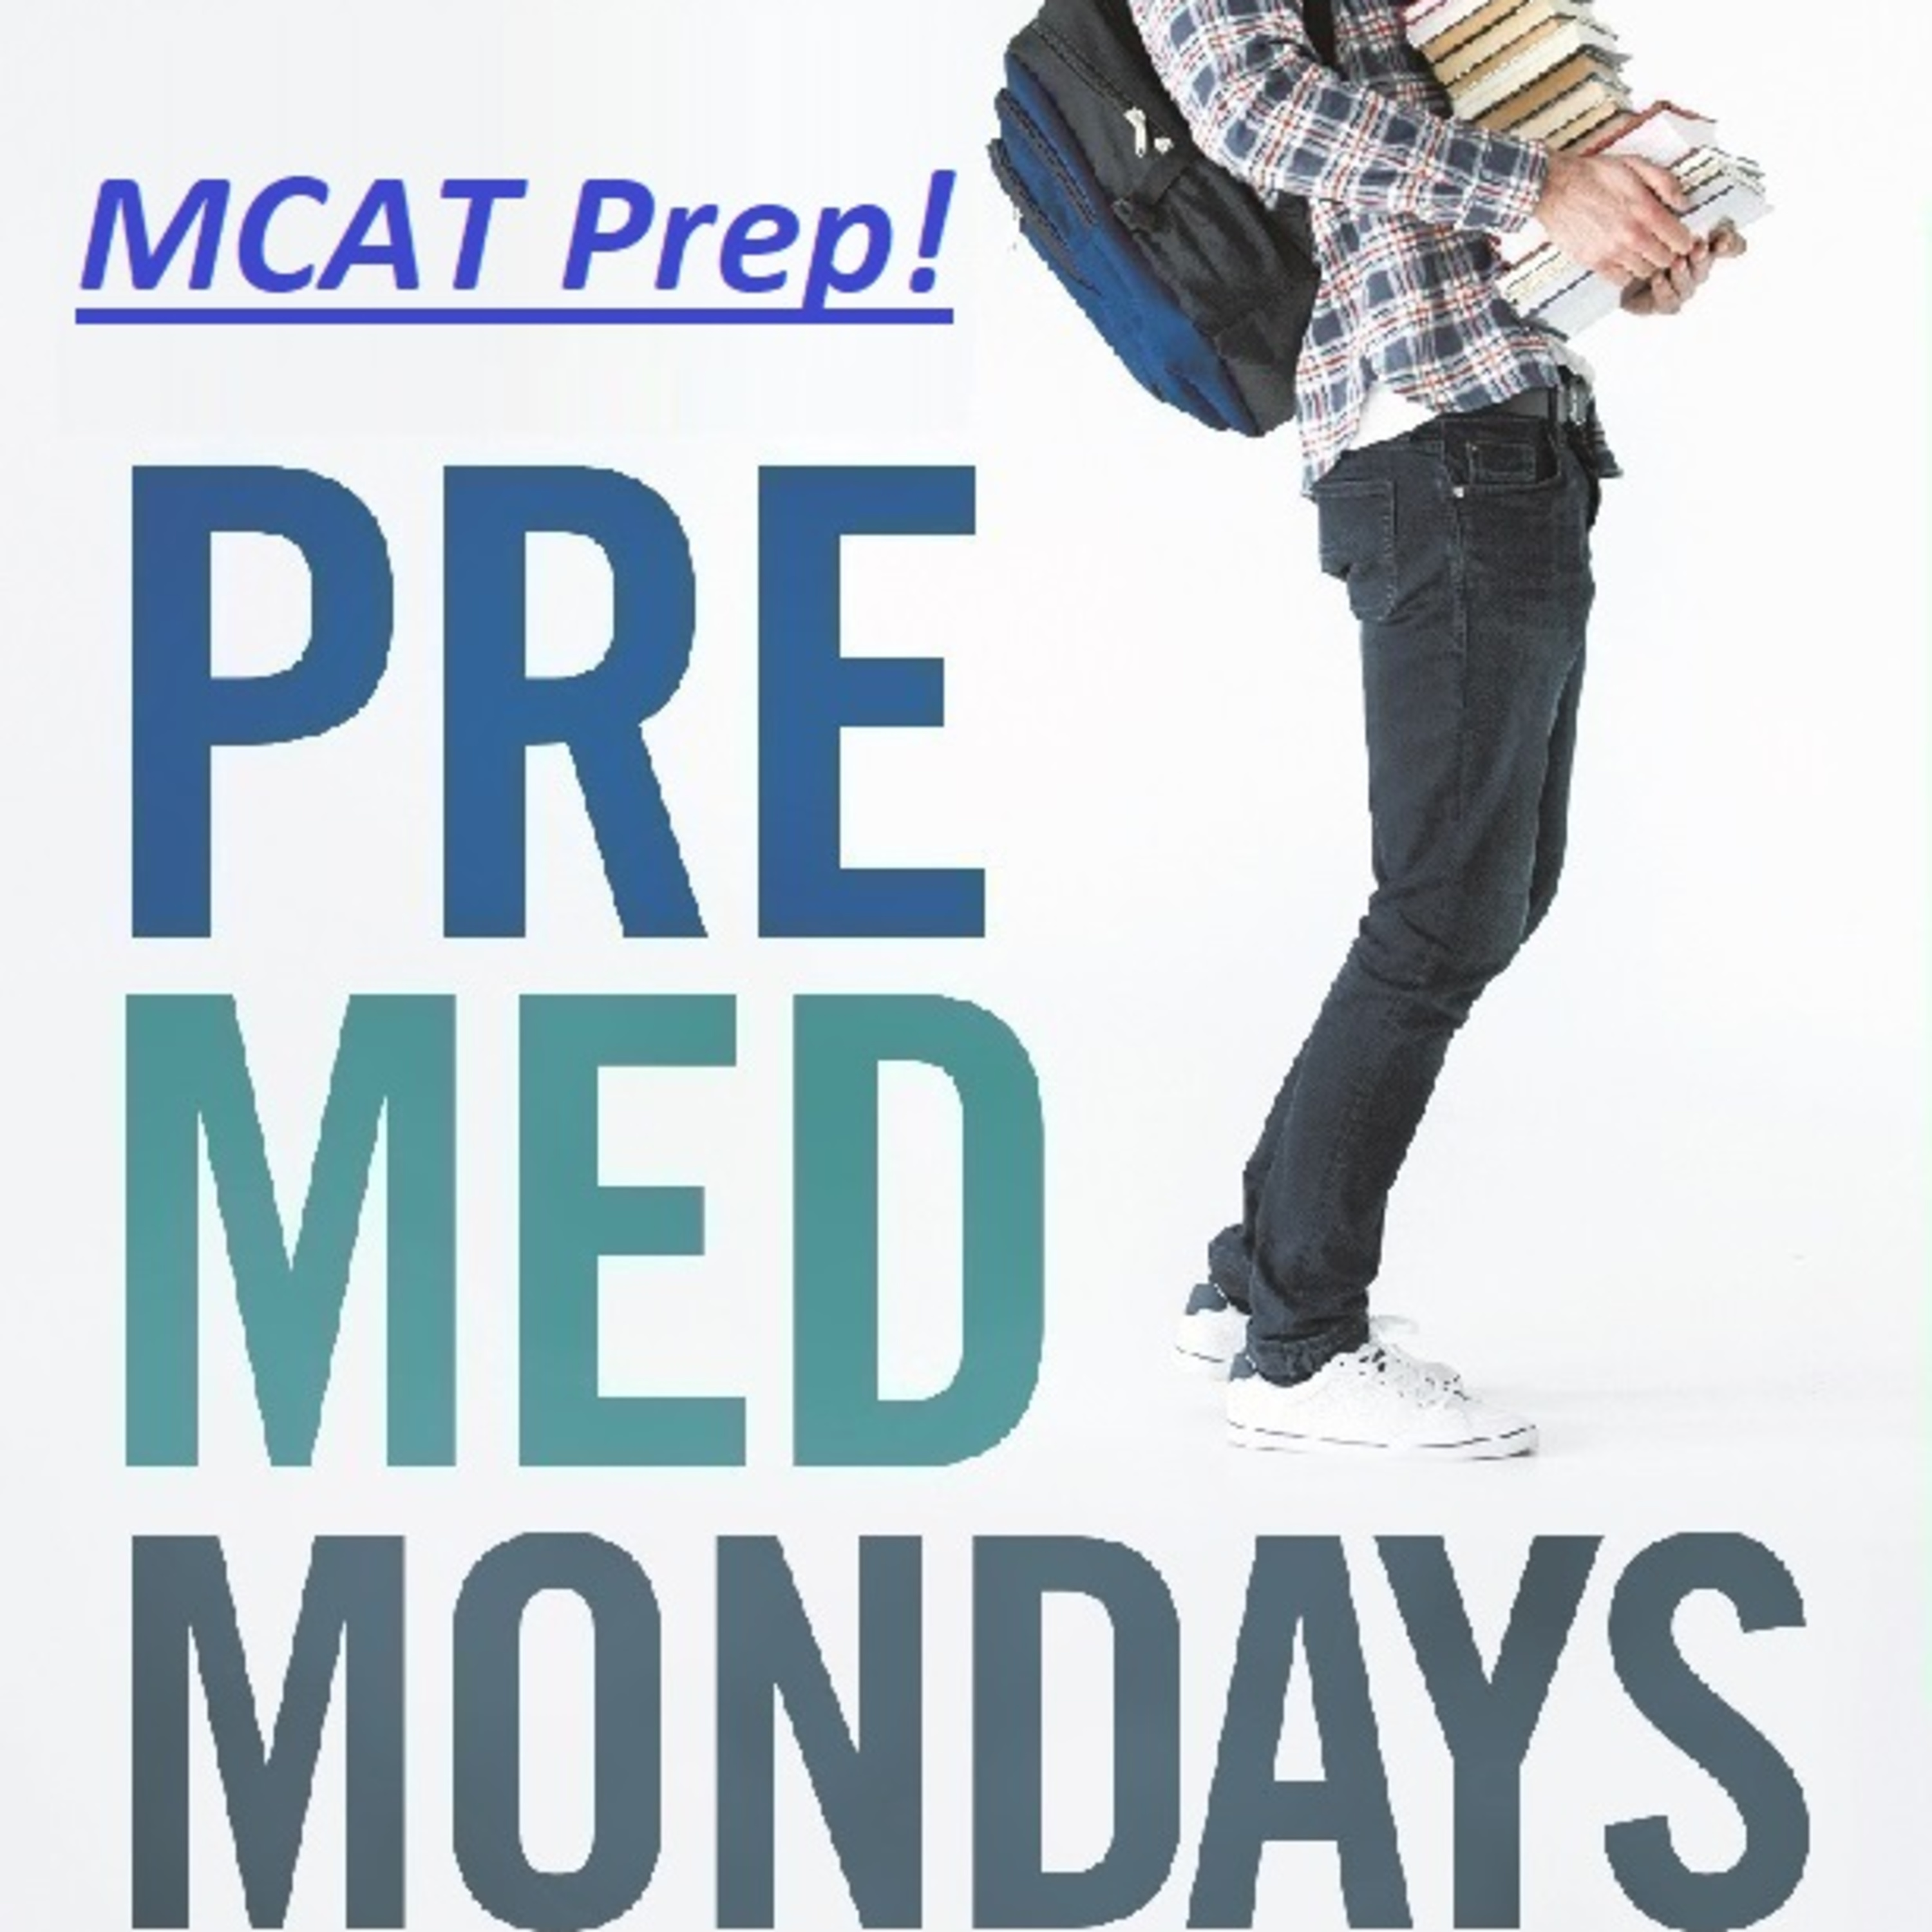 5 Things to Consider When Preparing to Study for the MCAT